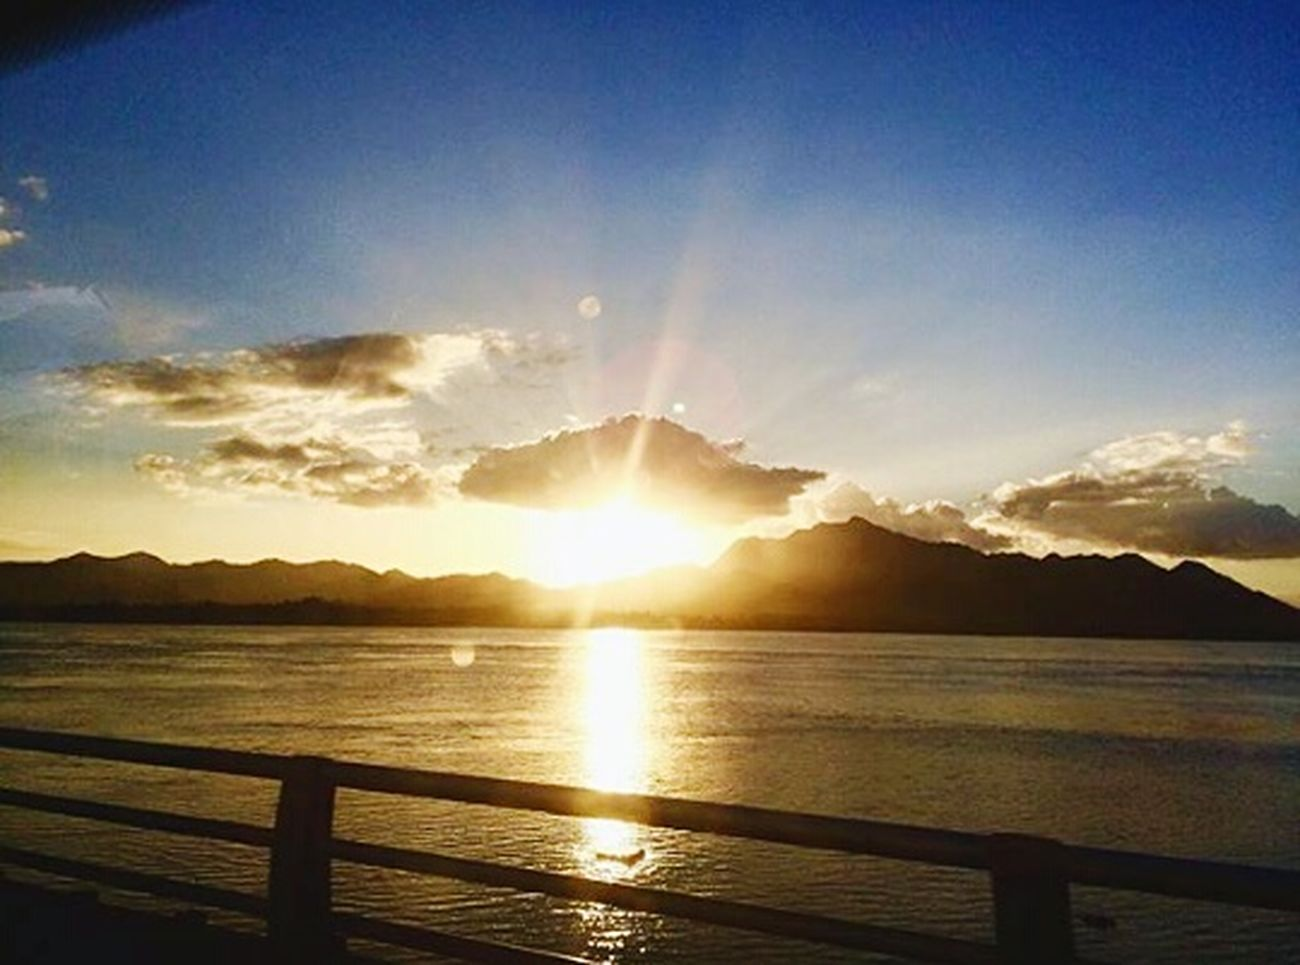 Sanjuanicobridge Sanjuanicobridgeview Sunset Nature Light And Shadow Philippines